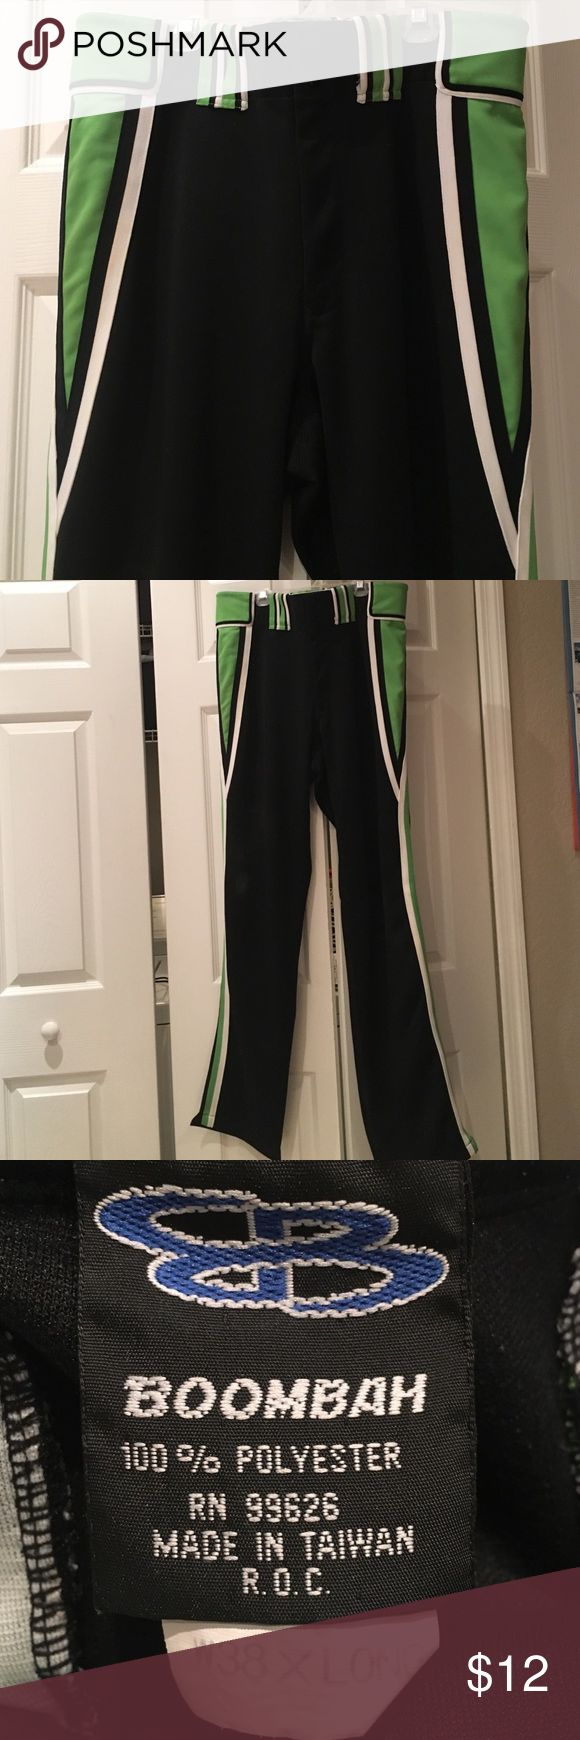 Boombah men's softball pants 38x36 Boombah Men's Softball pants 38 long. Black with white and lime green vertical stripes. Missing too snap. boombah Pants Sweatpants & Joggers